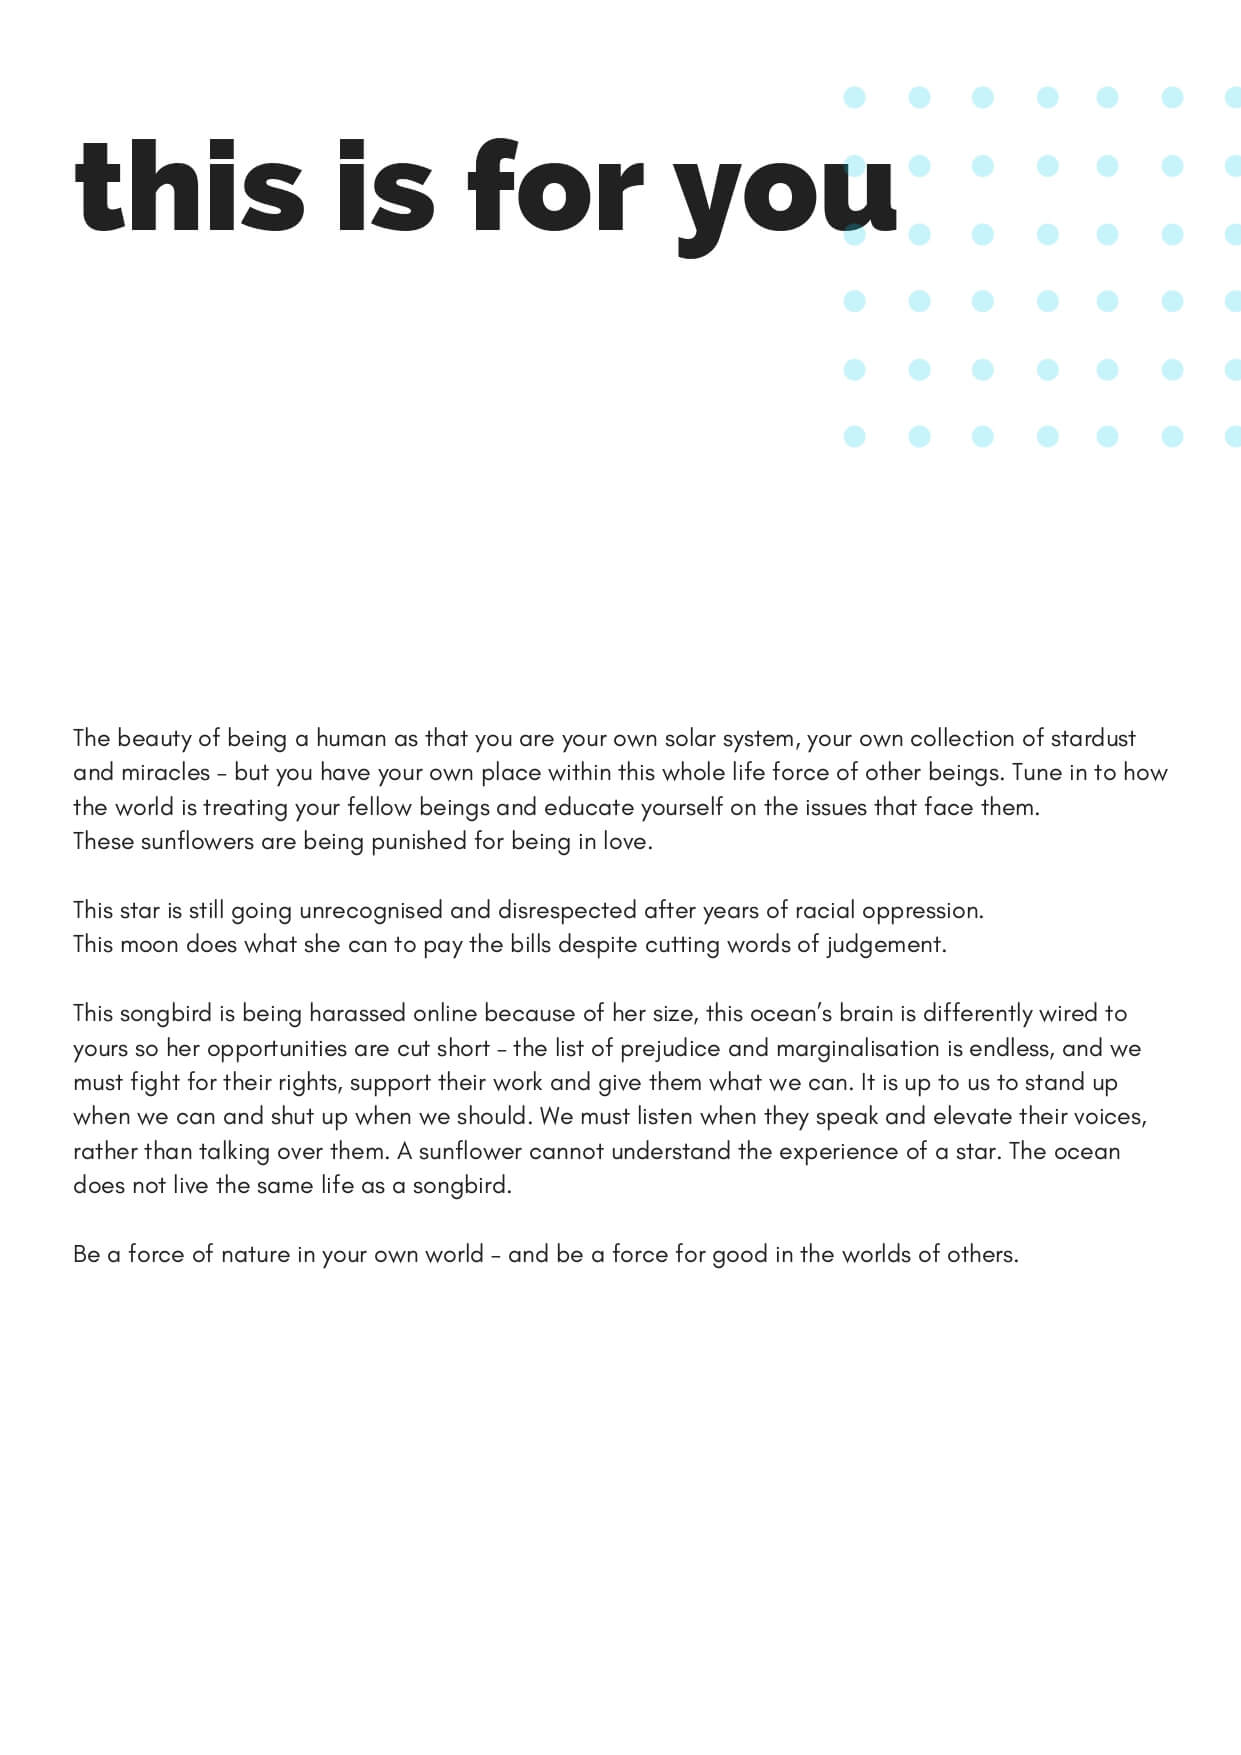 How to Change the World zine - This is for you by Abbie McLaren (page 2)